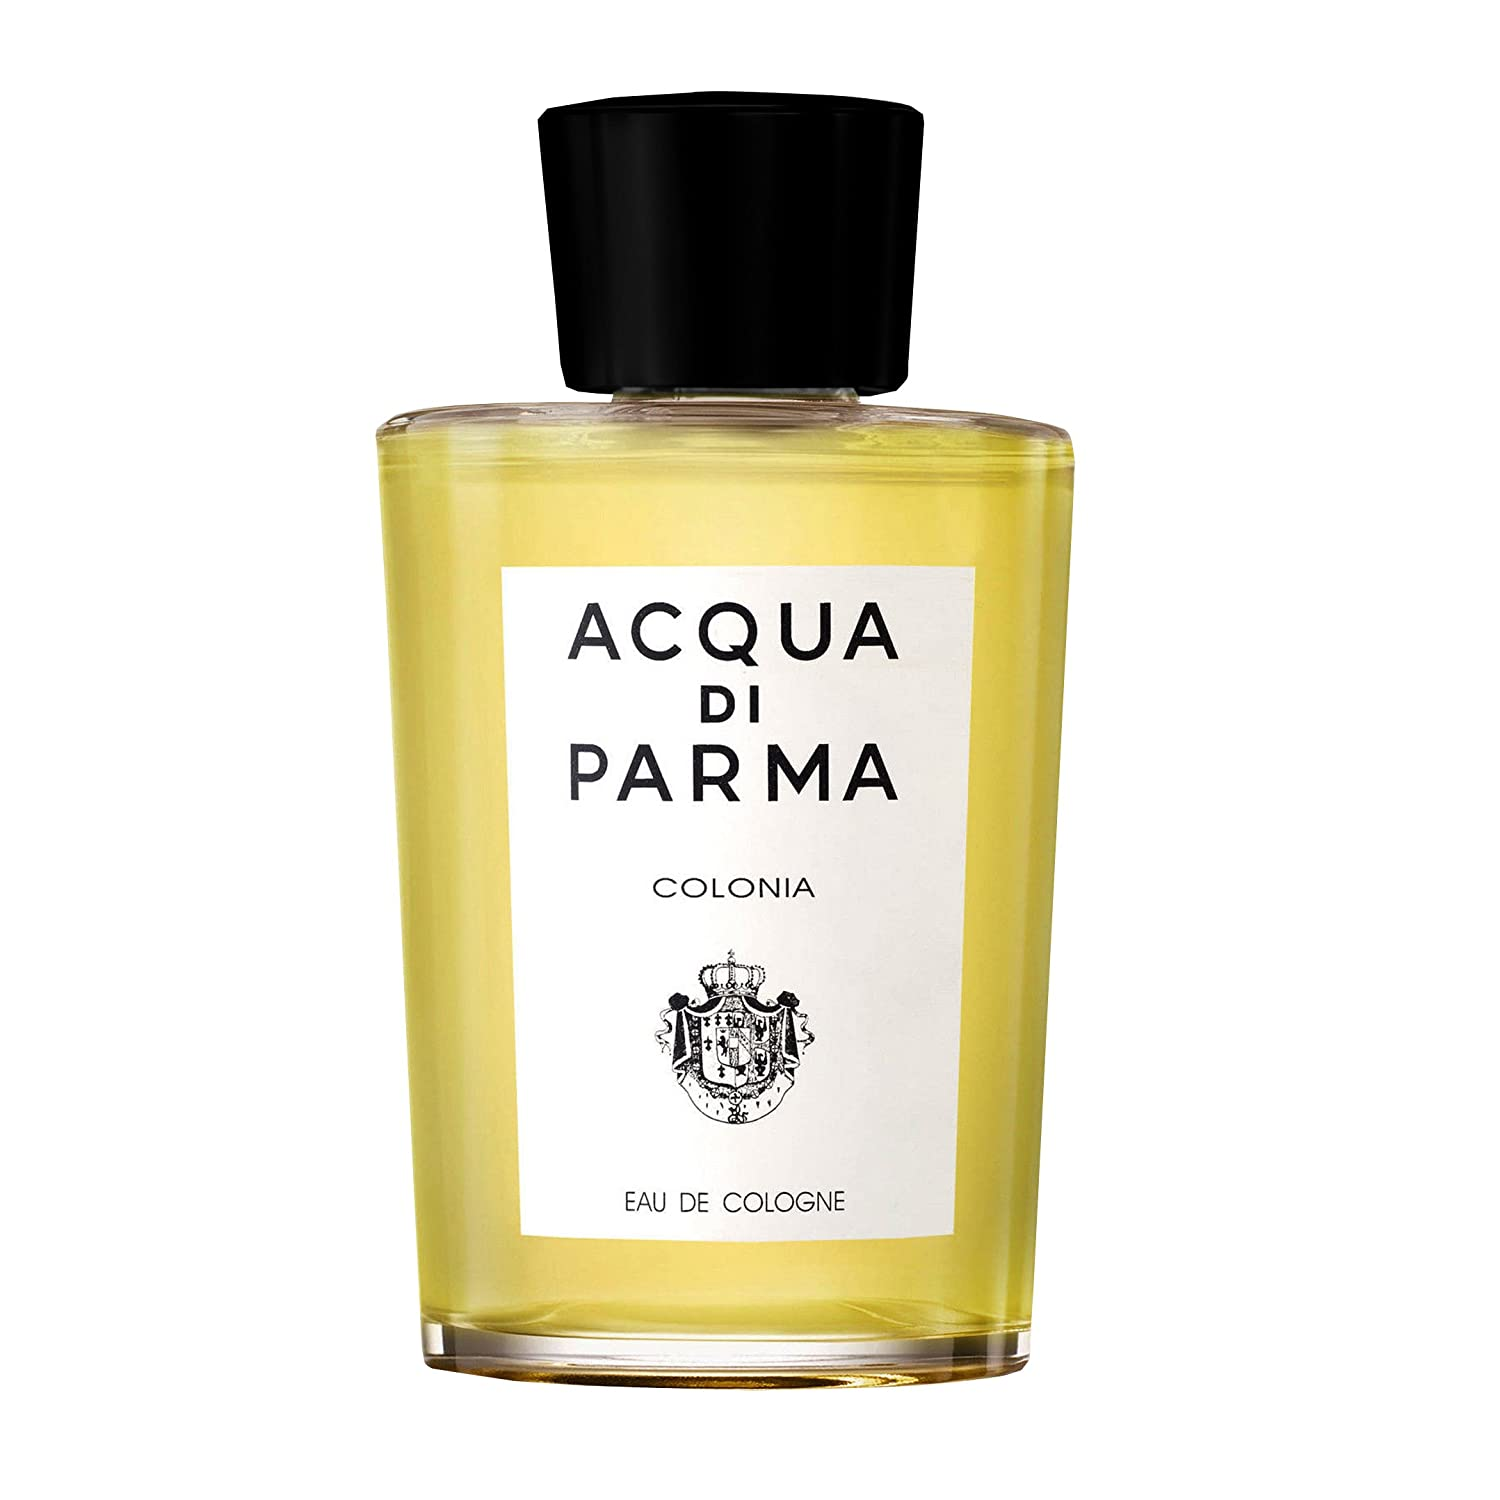 Amazon.com : Acqua Di Parma Cologne Spray for Men, 6 Ounce : Aqua Di Parma : Beauty